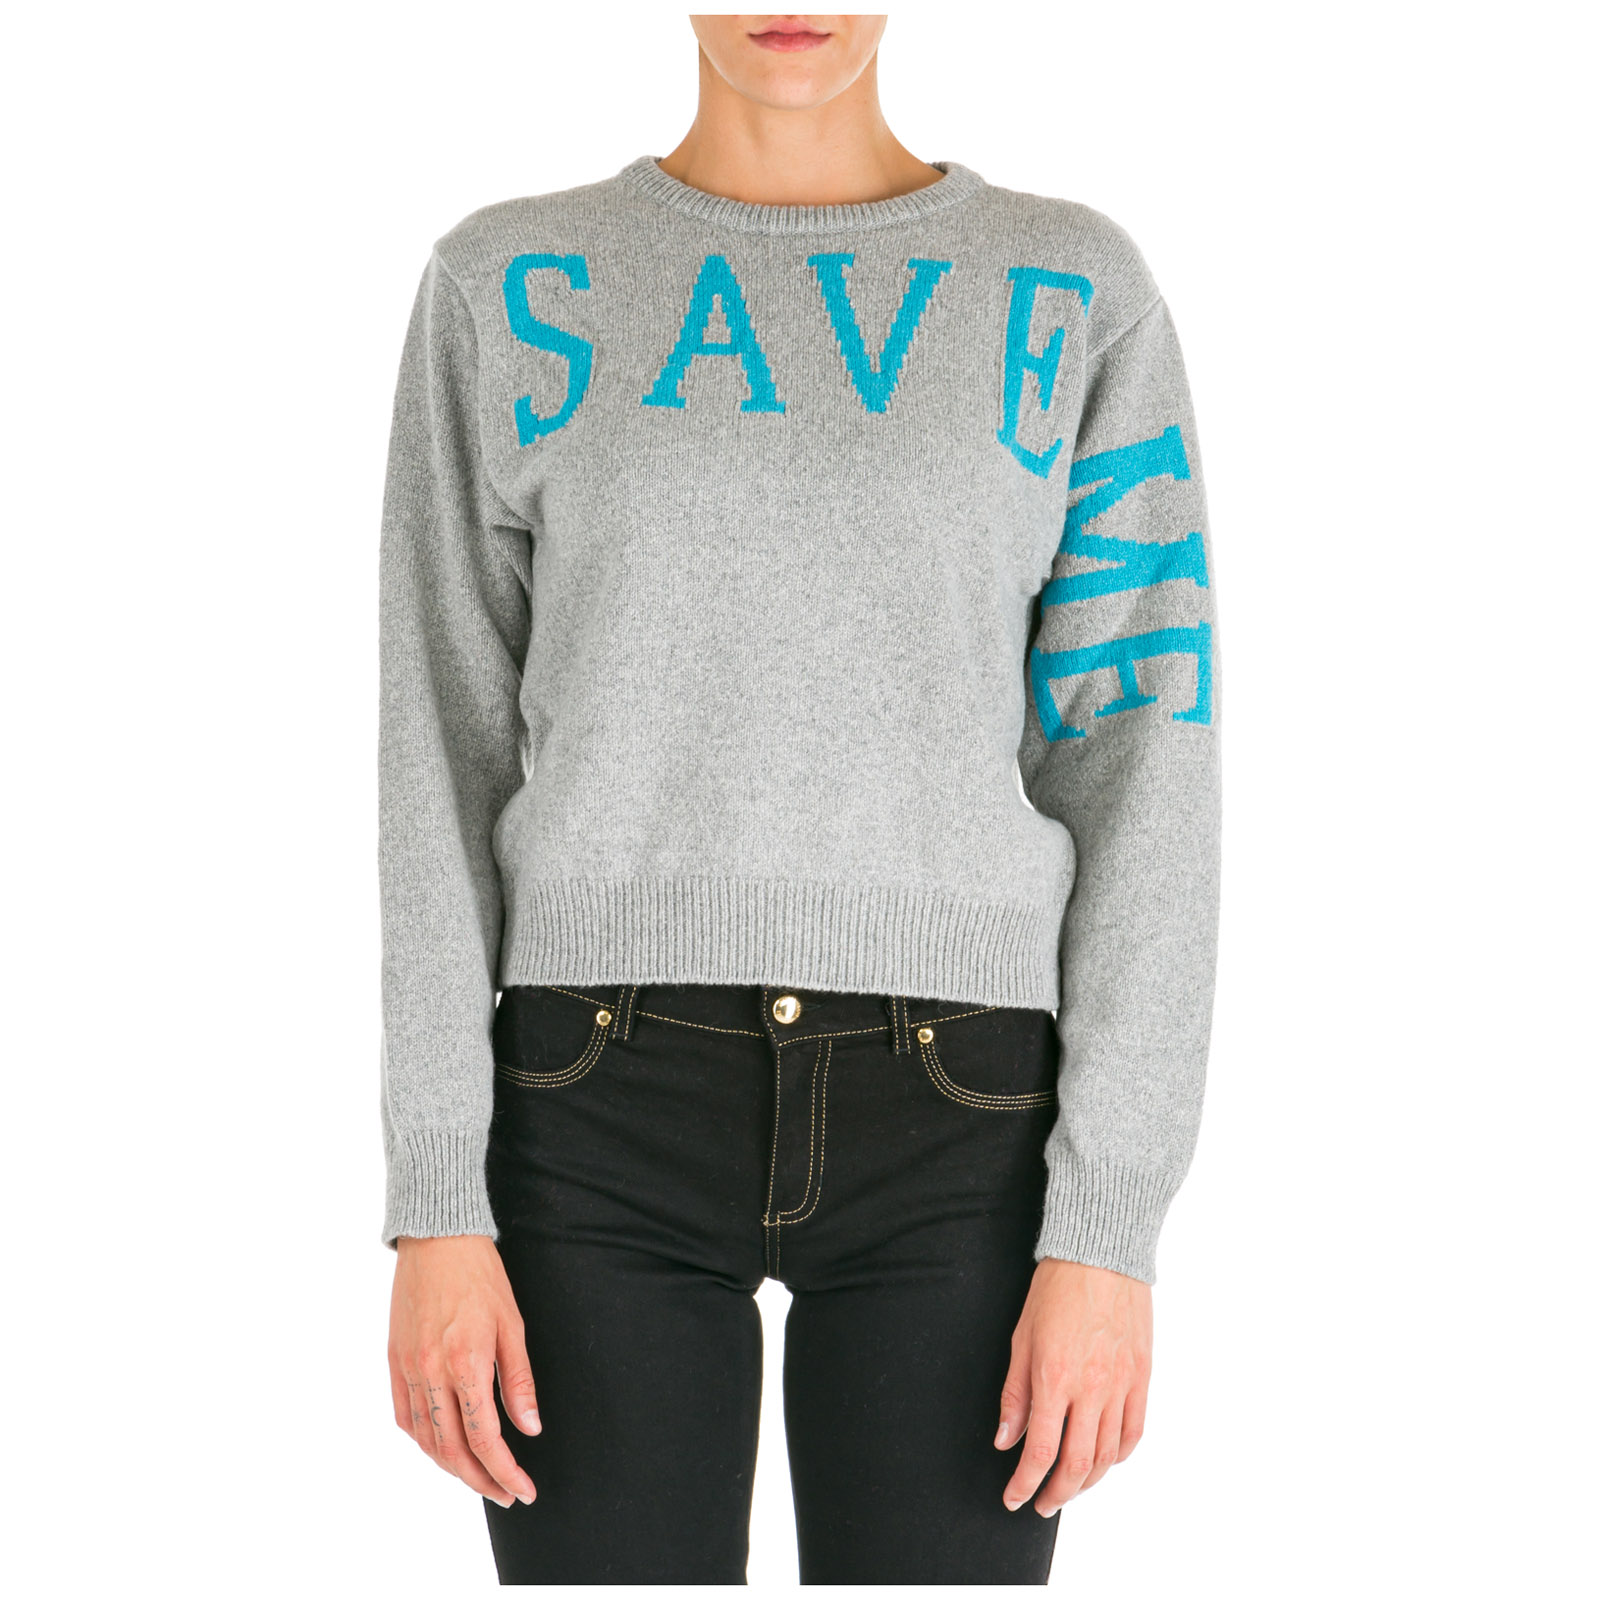 Women's jumper sweater crew neck round save me